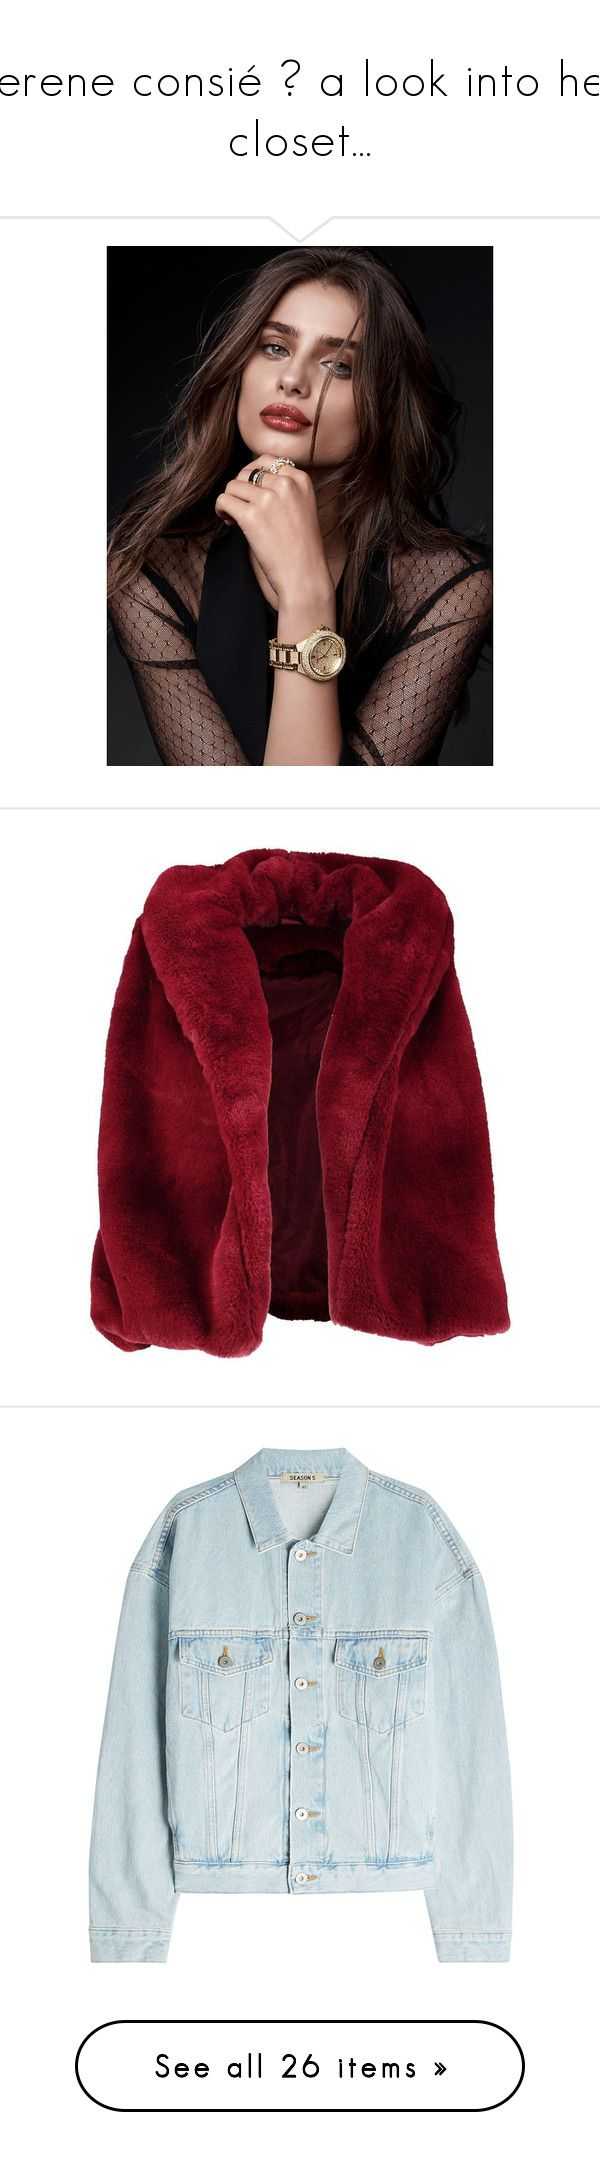 """""""serene consié ♛ a look into her closet..."""" by opul3nt on Polyvore featuring taylor hill, outerwear, vests, jackets, coats, fur, gilet vest, red faux fur vest, drapey vest and faux fur waistcoat"""